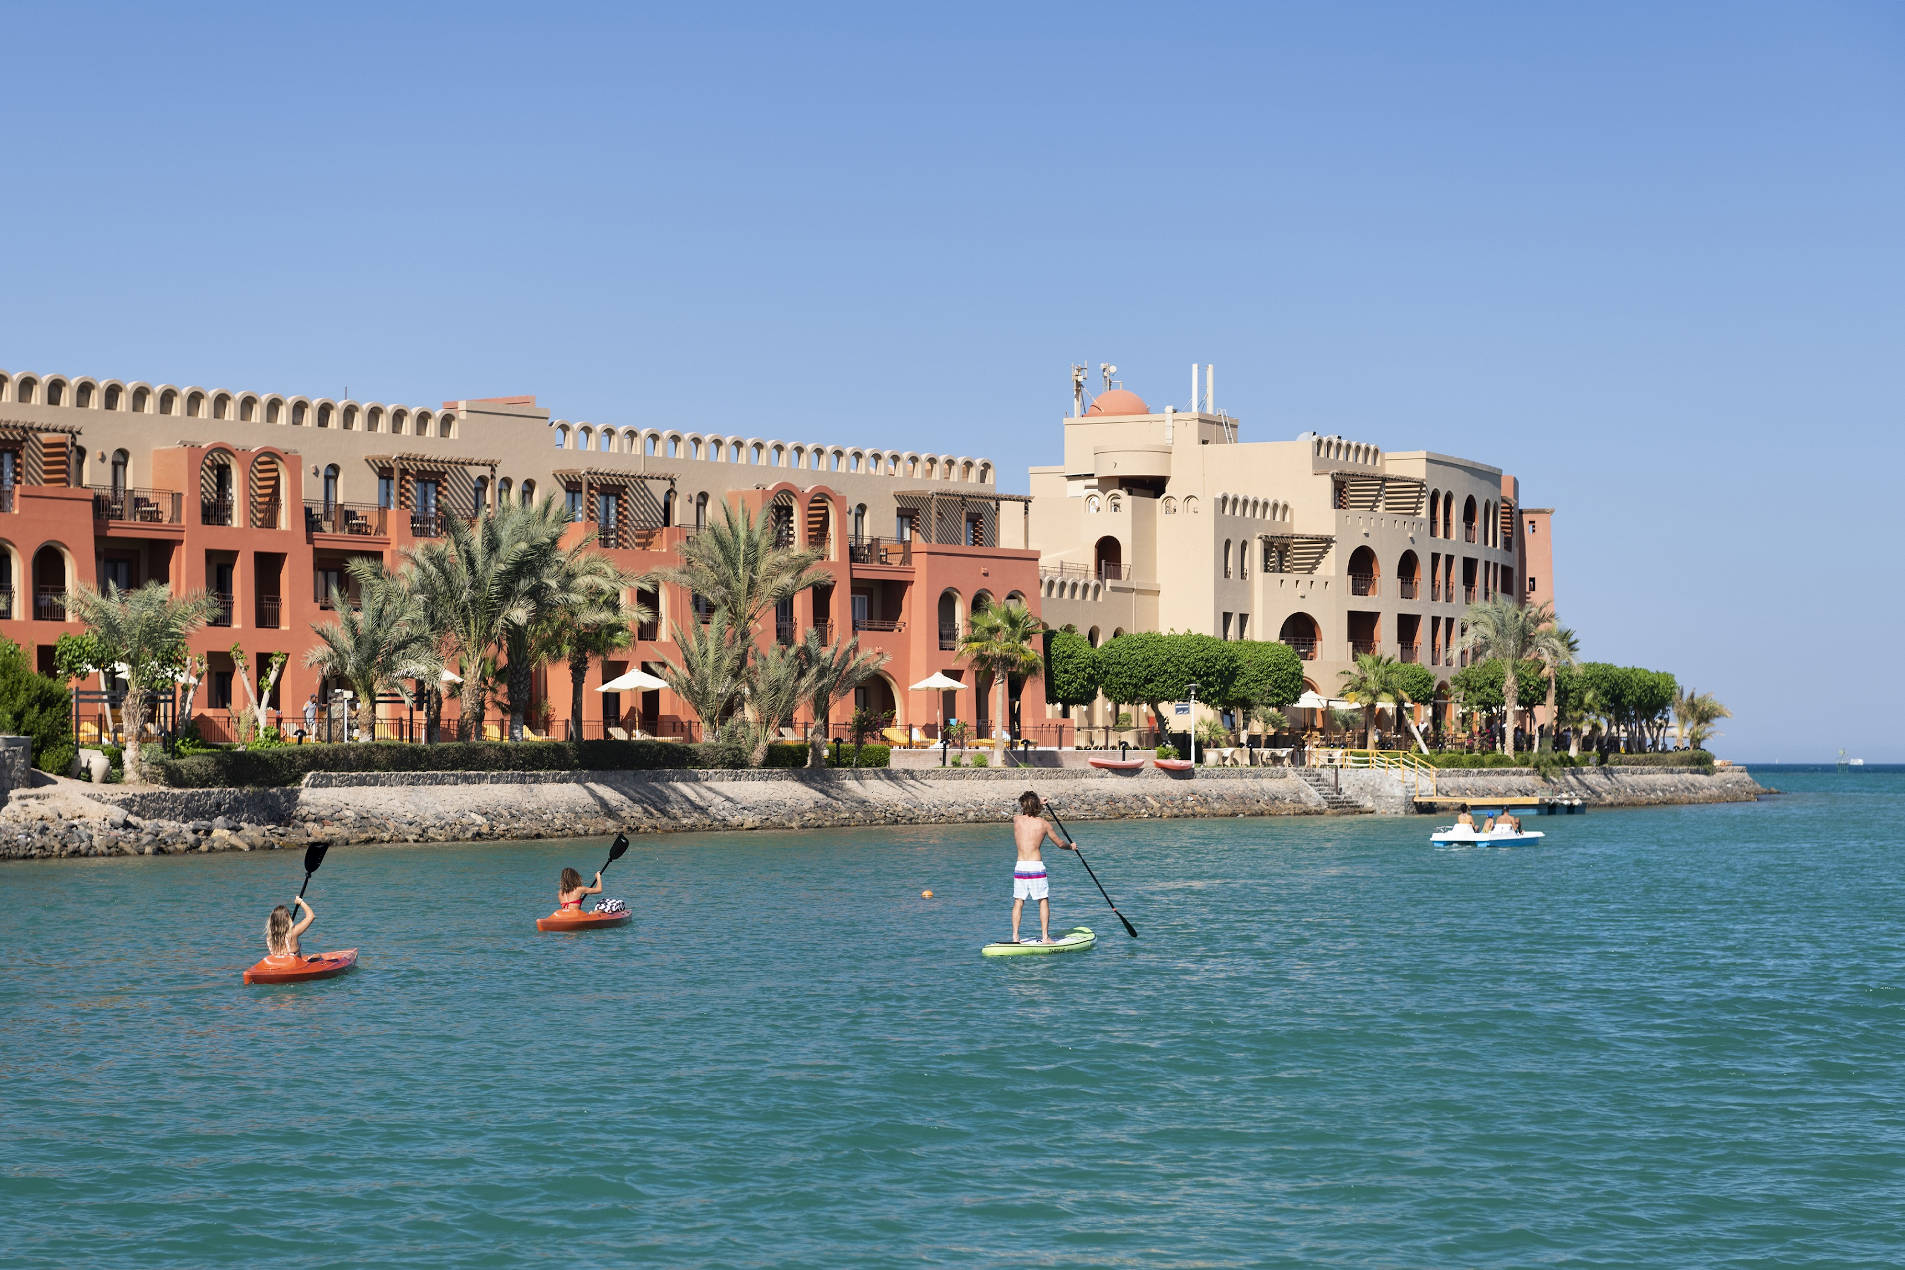 Paddle boarding and kayaking in El Gouna Abu Tig Marina in front of Ocean view Hotel facade